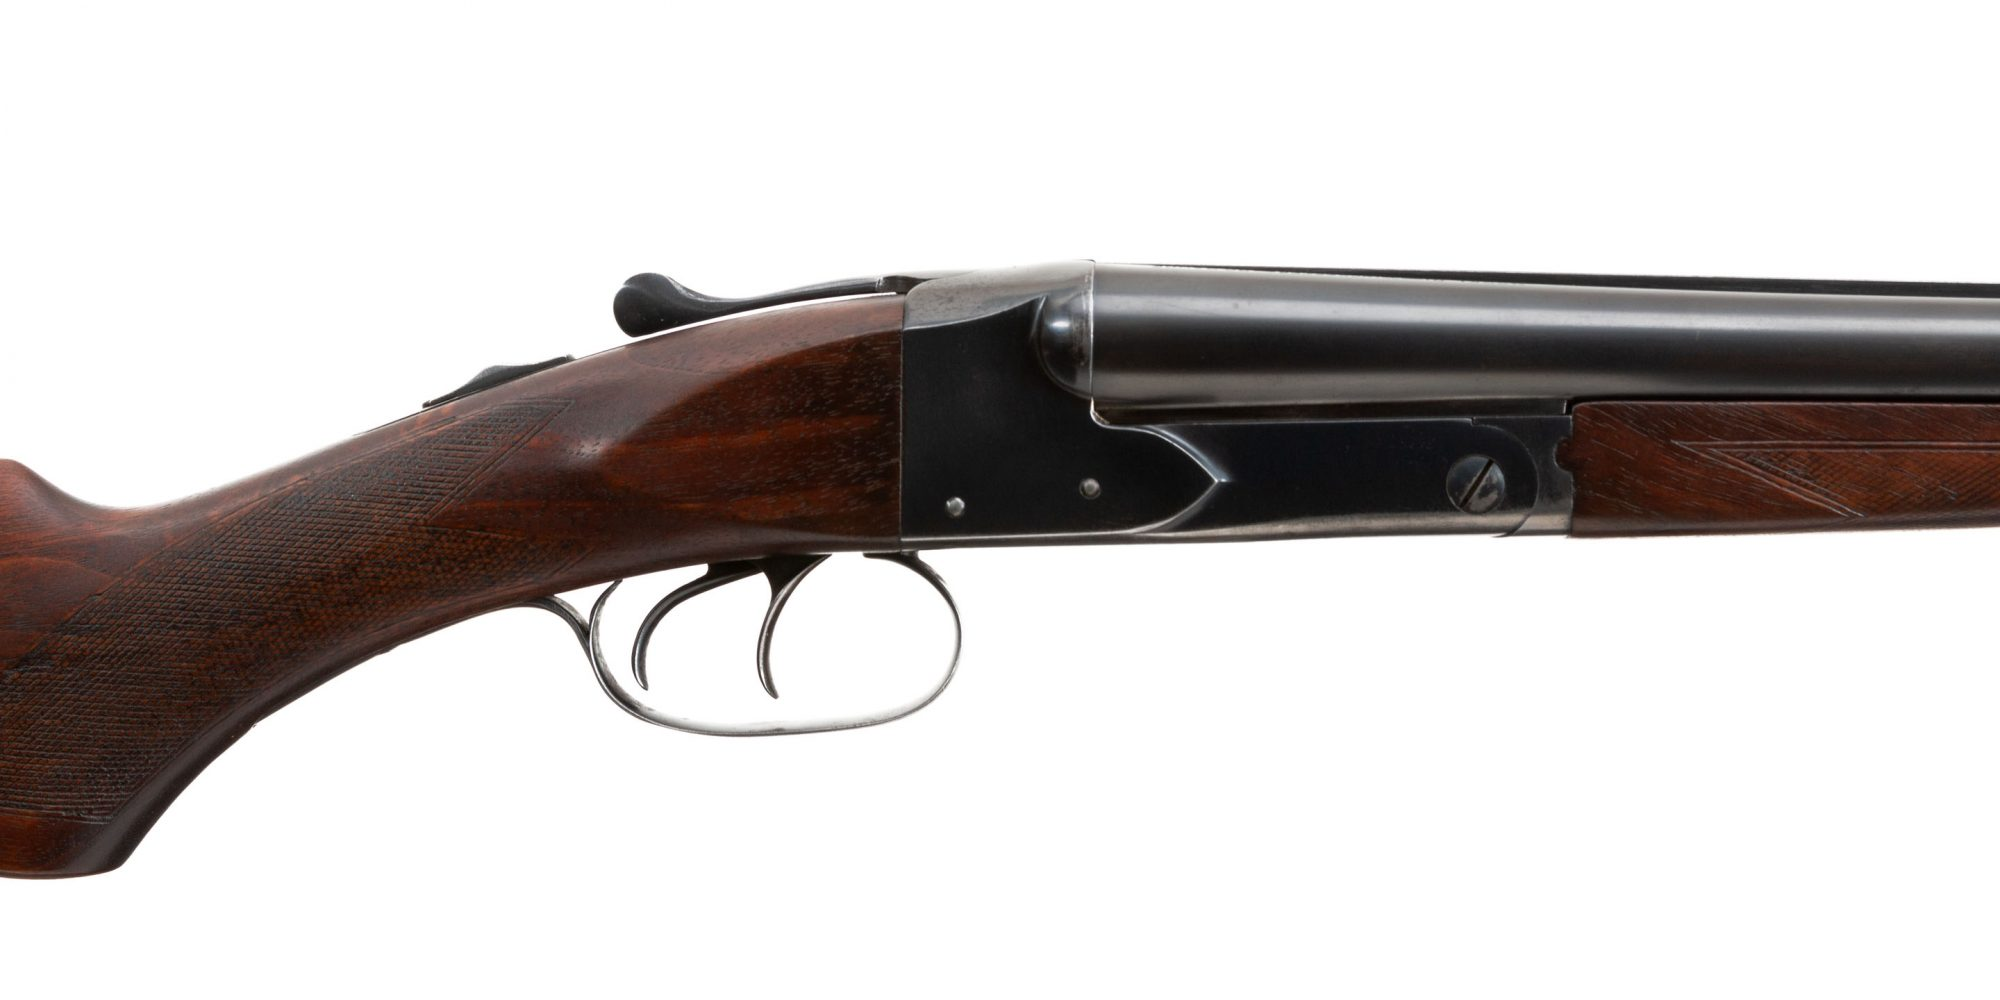 Photo of a pre-owned Winchester Model 21 20 gauge side by side shotgun, for sale as-is by Turnbull Restoration of Bloomfield, NY